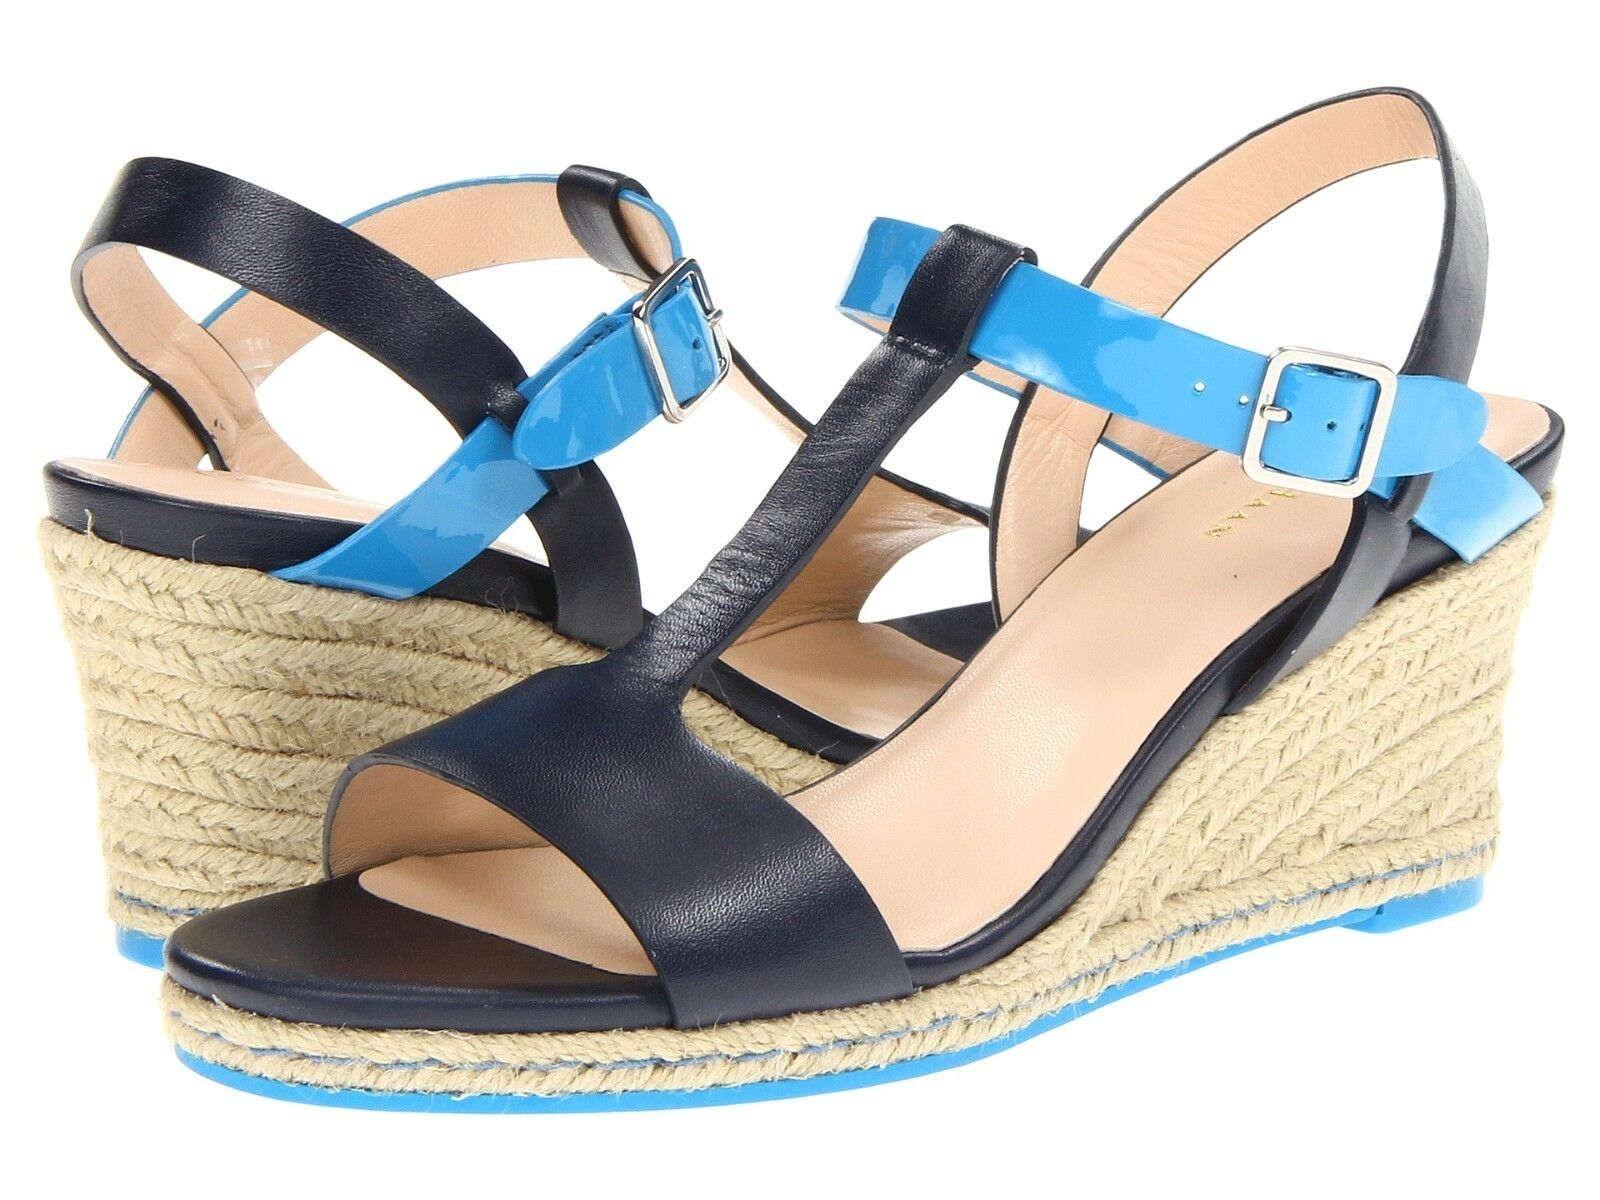 180 Cole Haan Elizabeth Blazer Wedge Sandal shoes Womens 11 NEW IN BOX